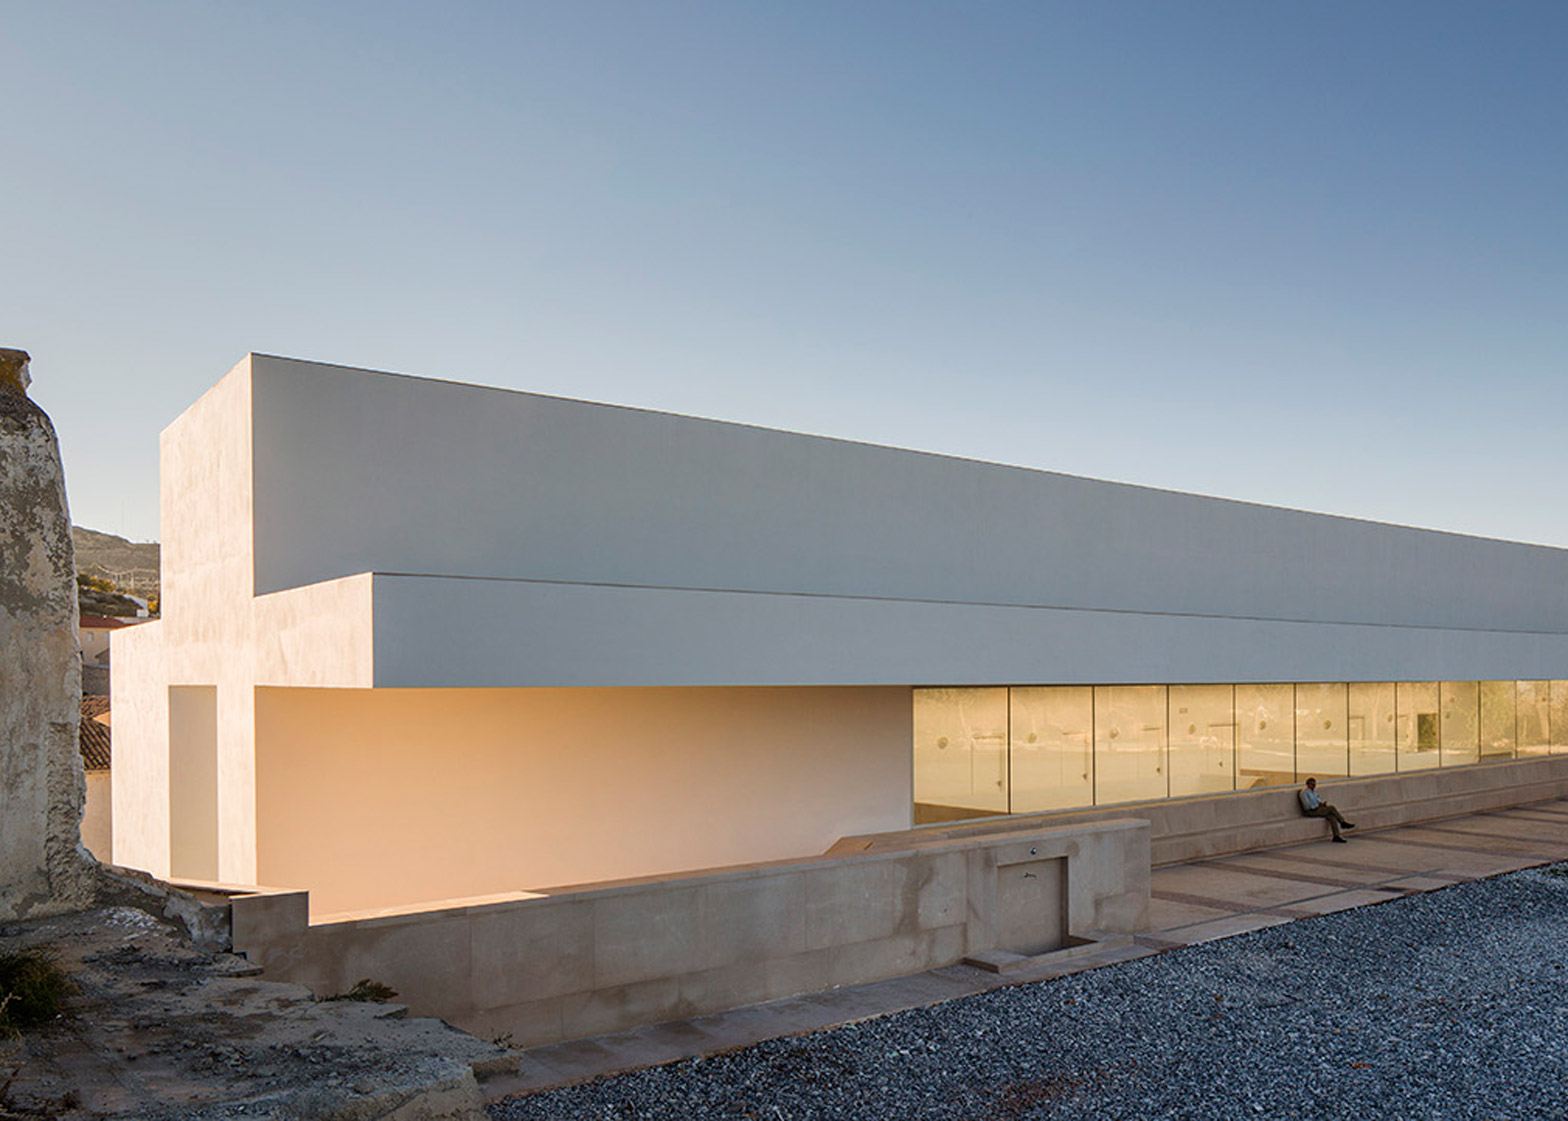 Employment Building by Daroca Arquitectos